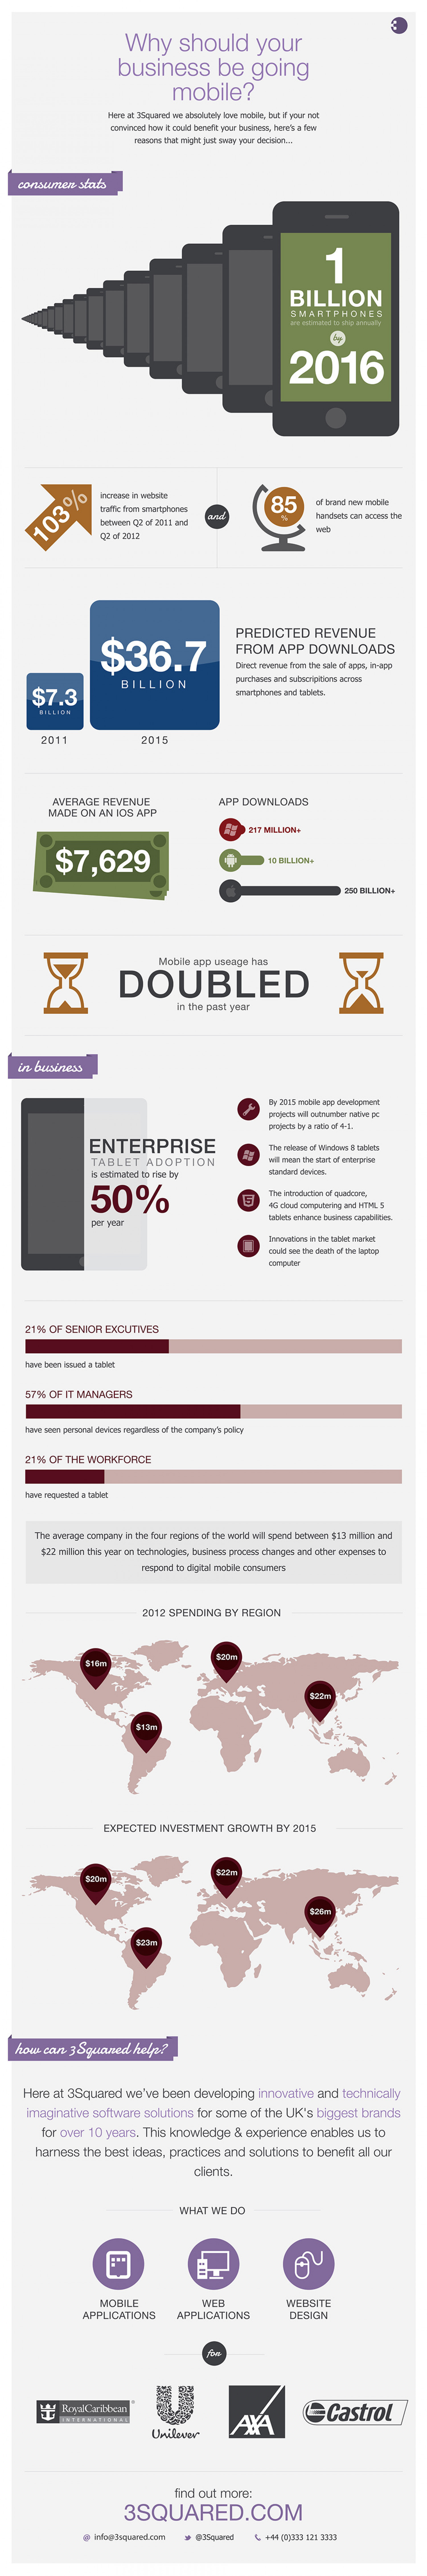 Why should your business go mobile? Infographic